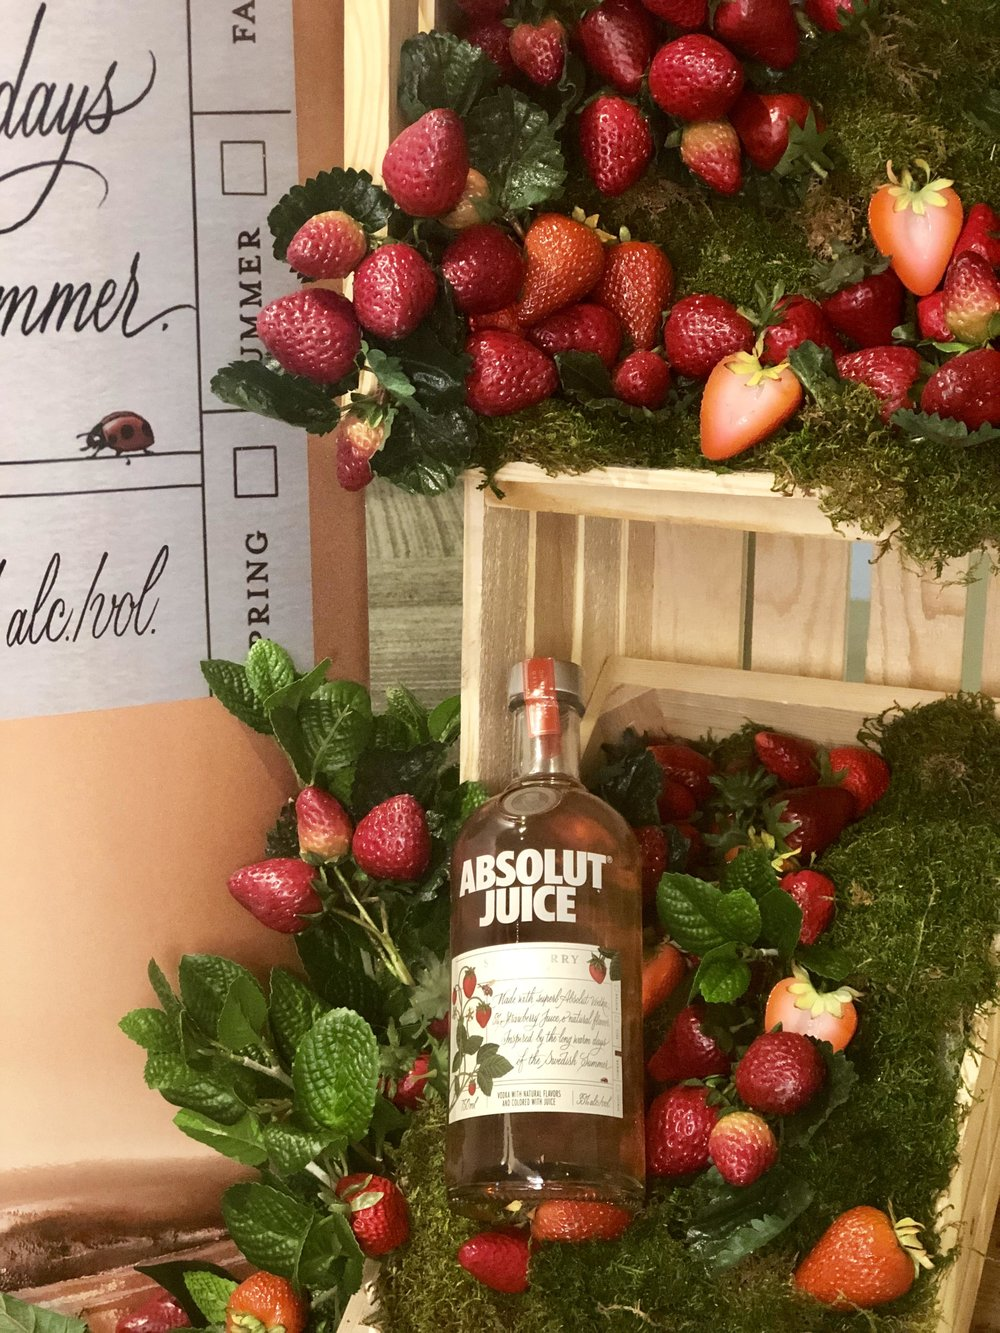 Absolut Juice Strawberry Product Display- B Floral